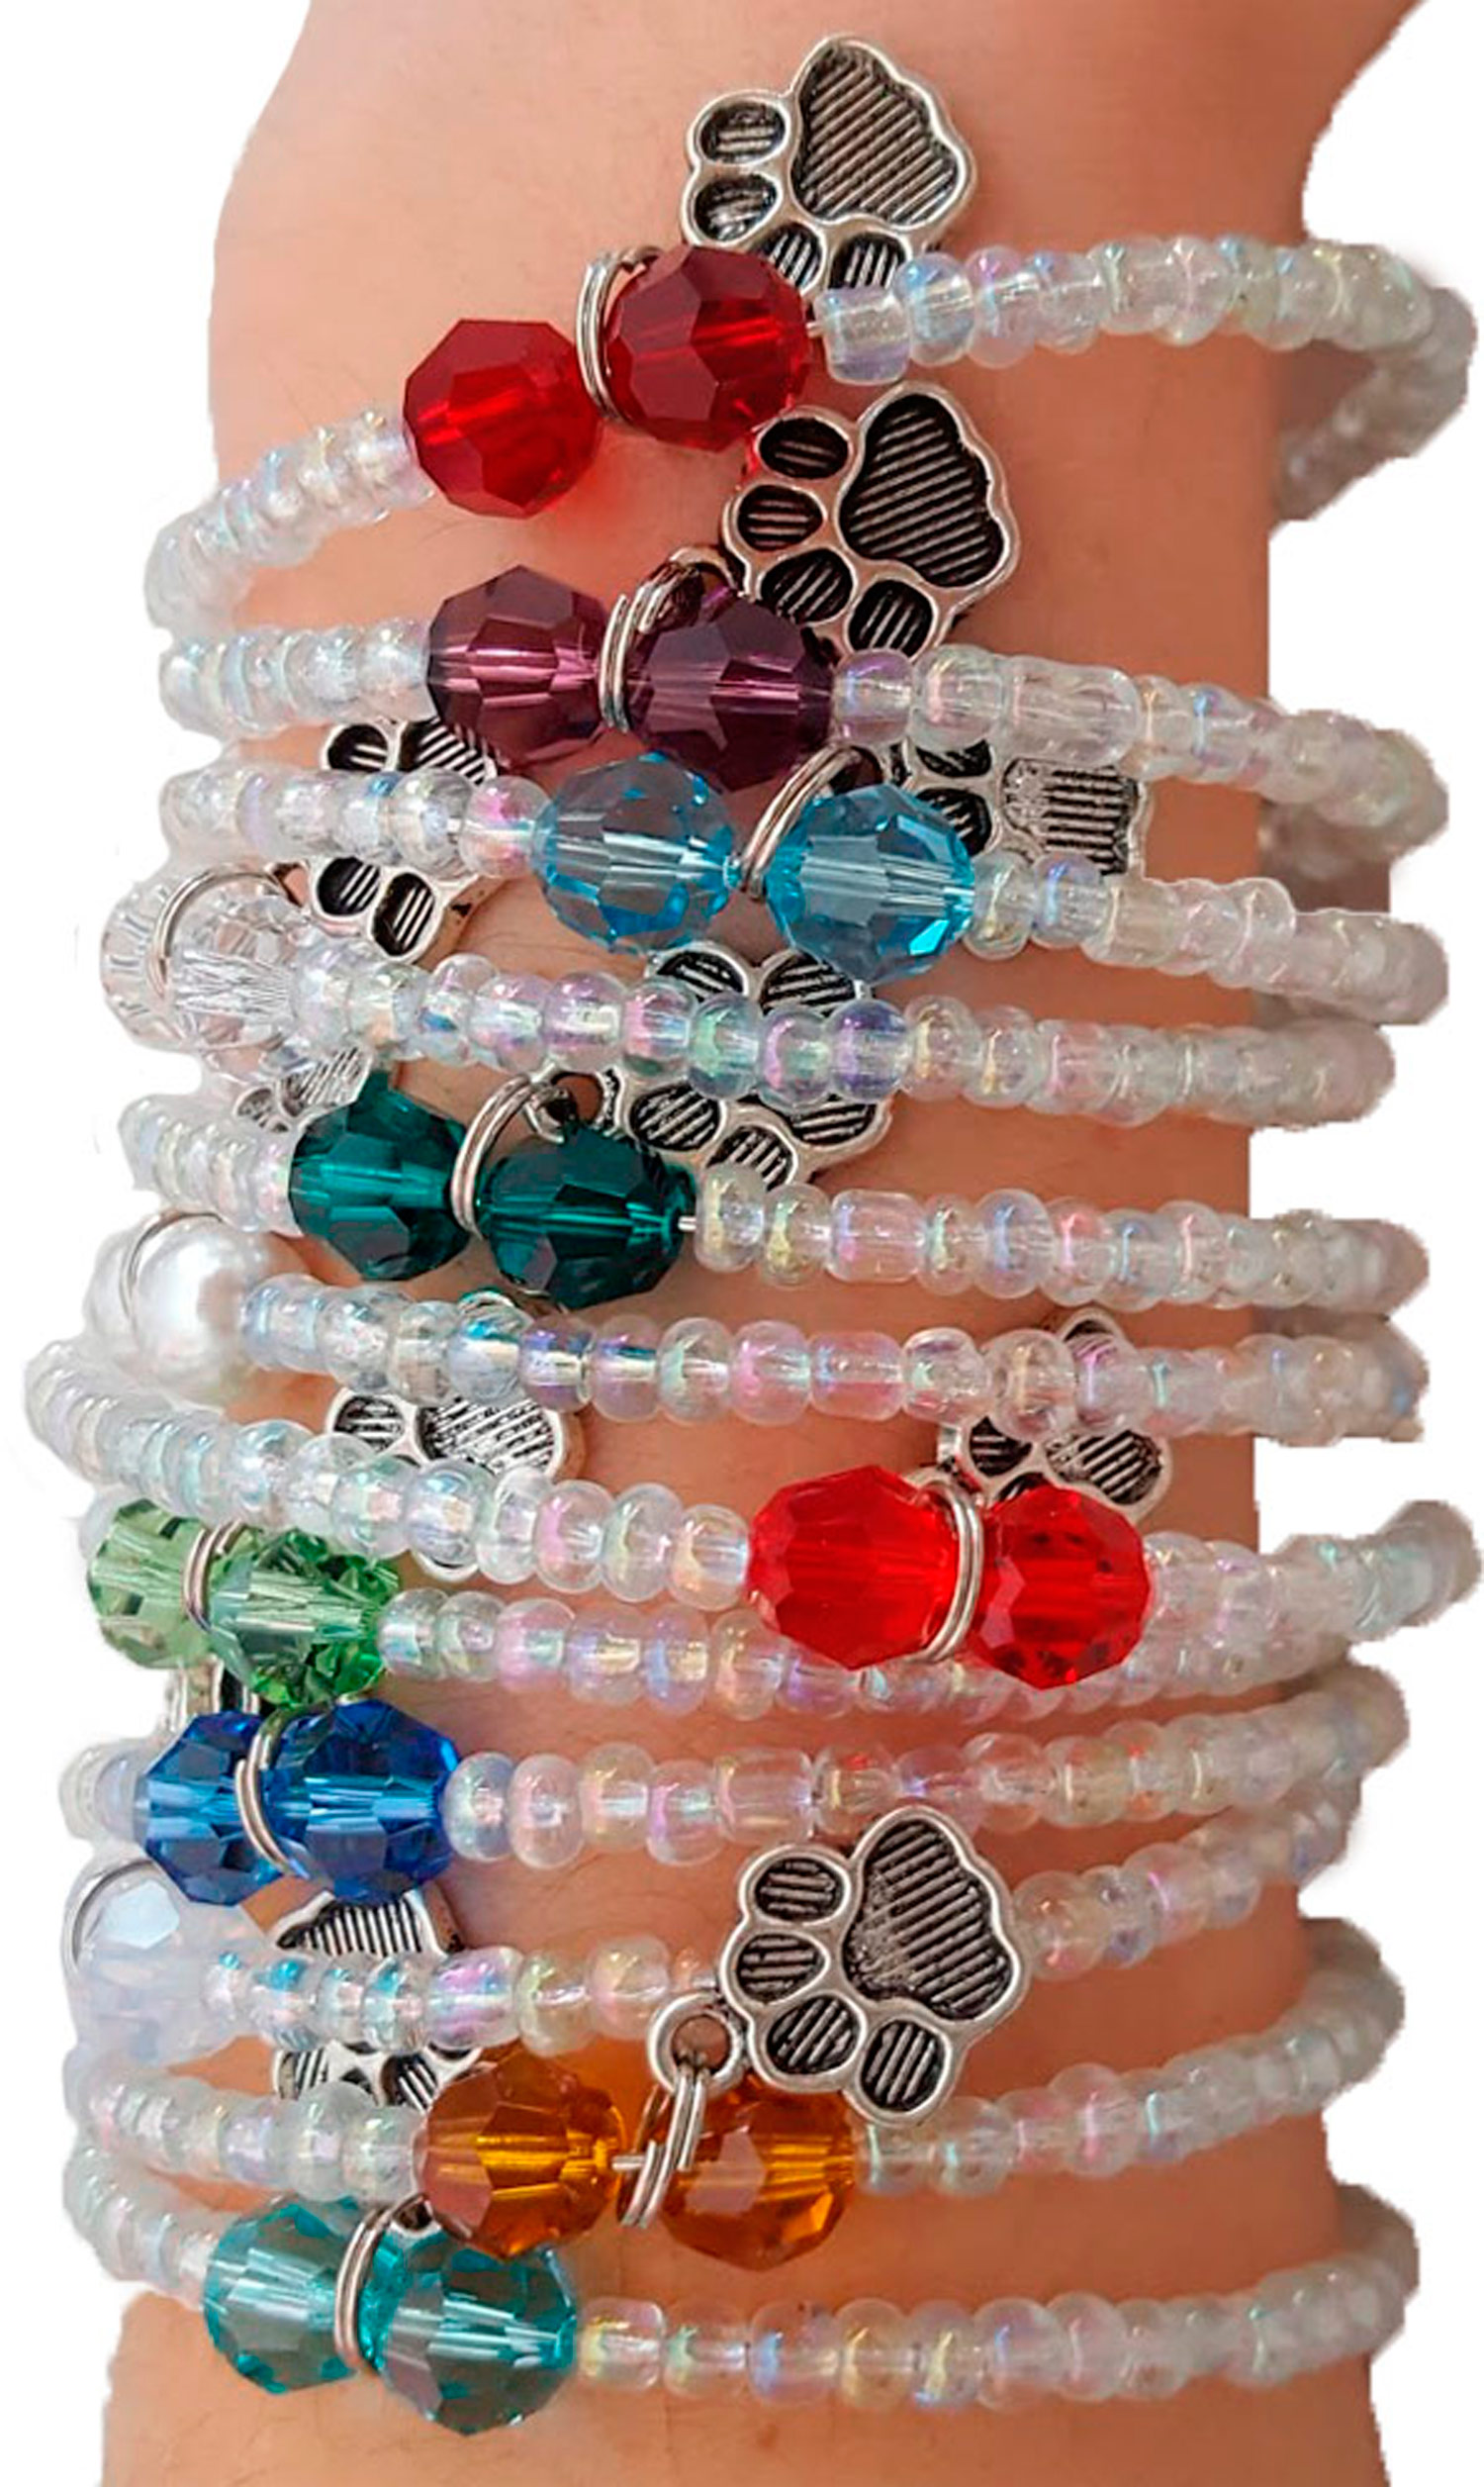 Dog Birthstone Bracelets